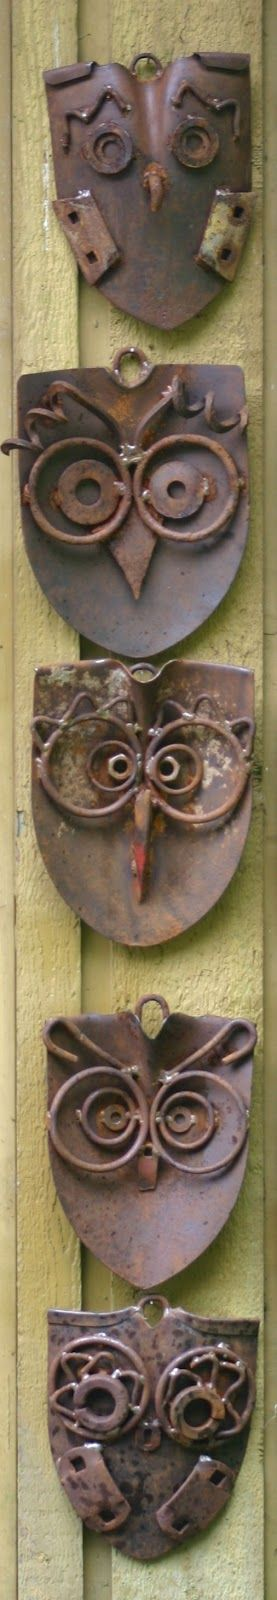 Kathi's Garden Art Rust-n-Stuff: A Parliament of Owls